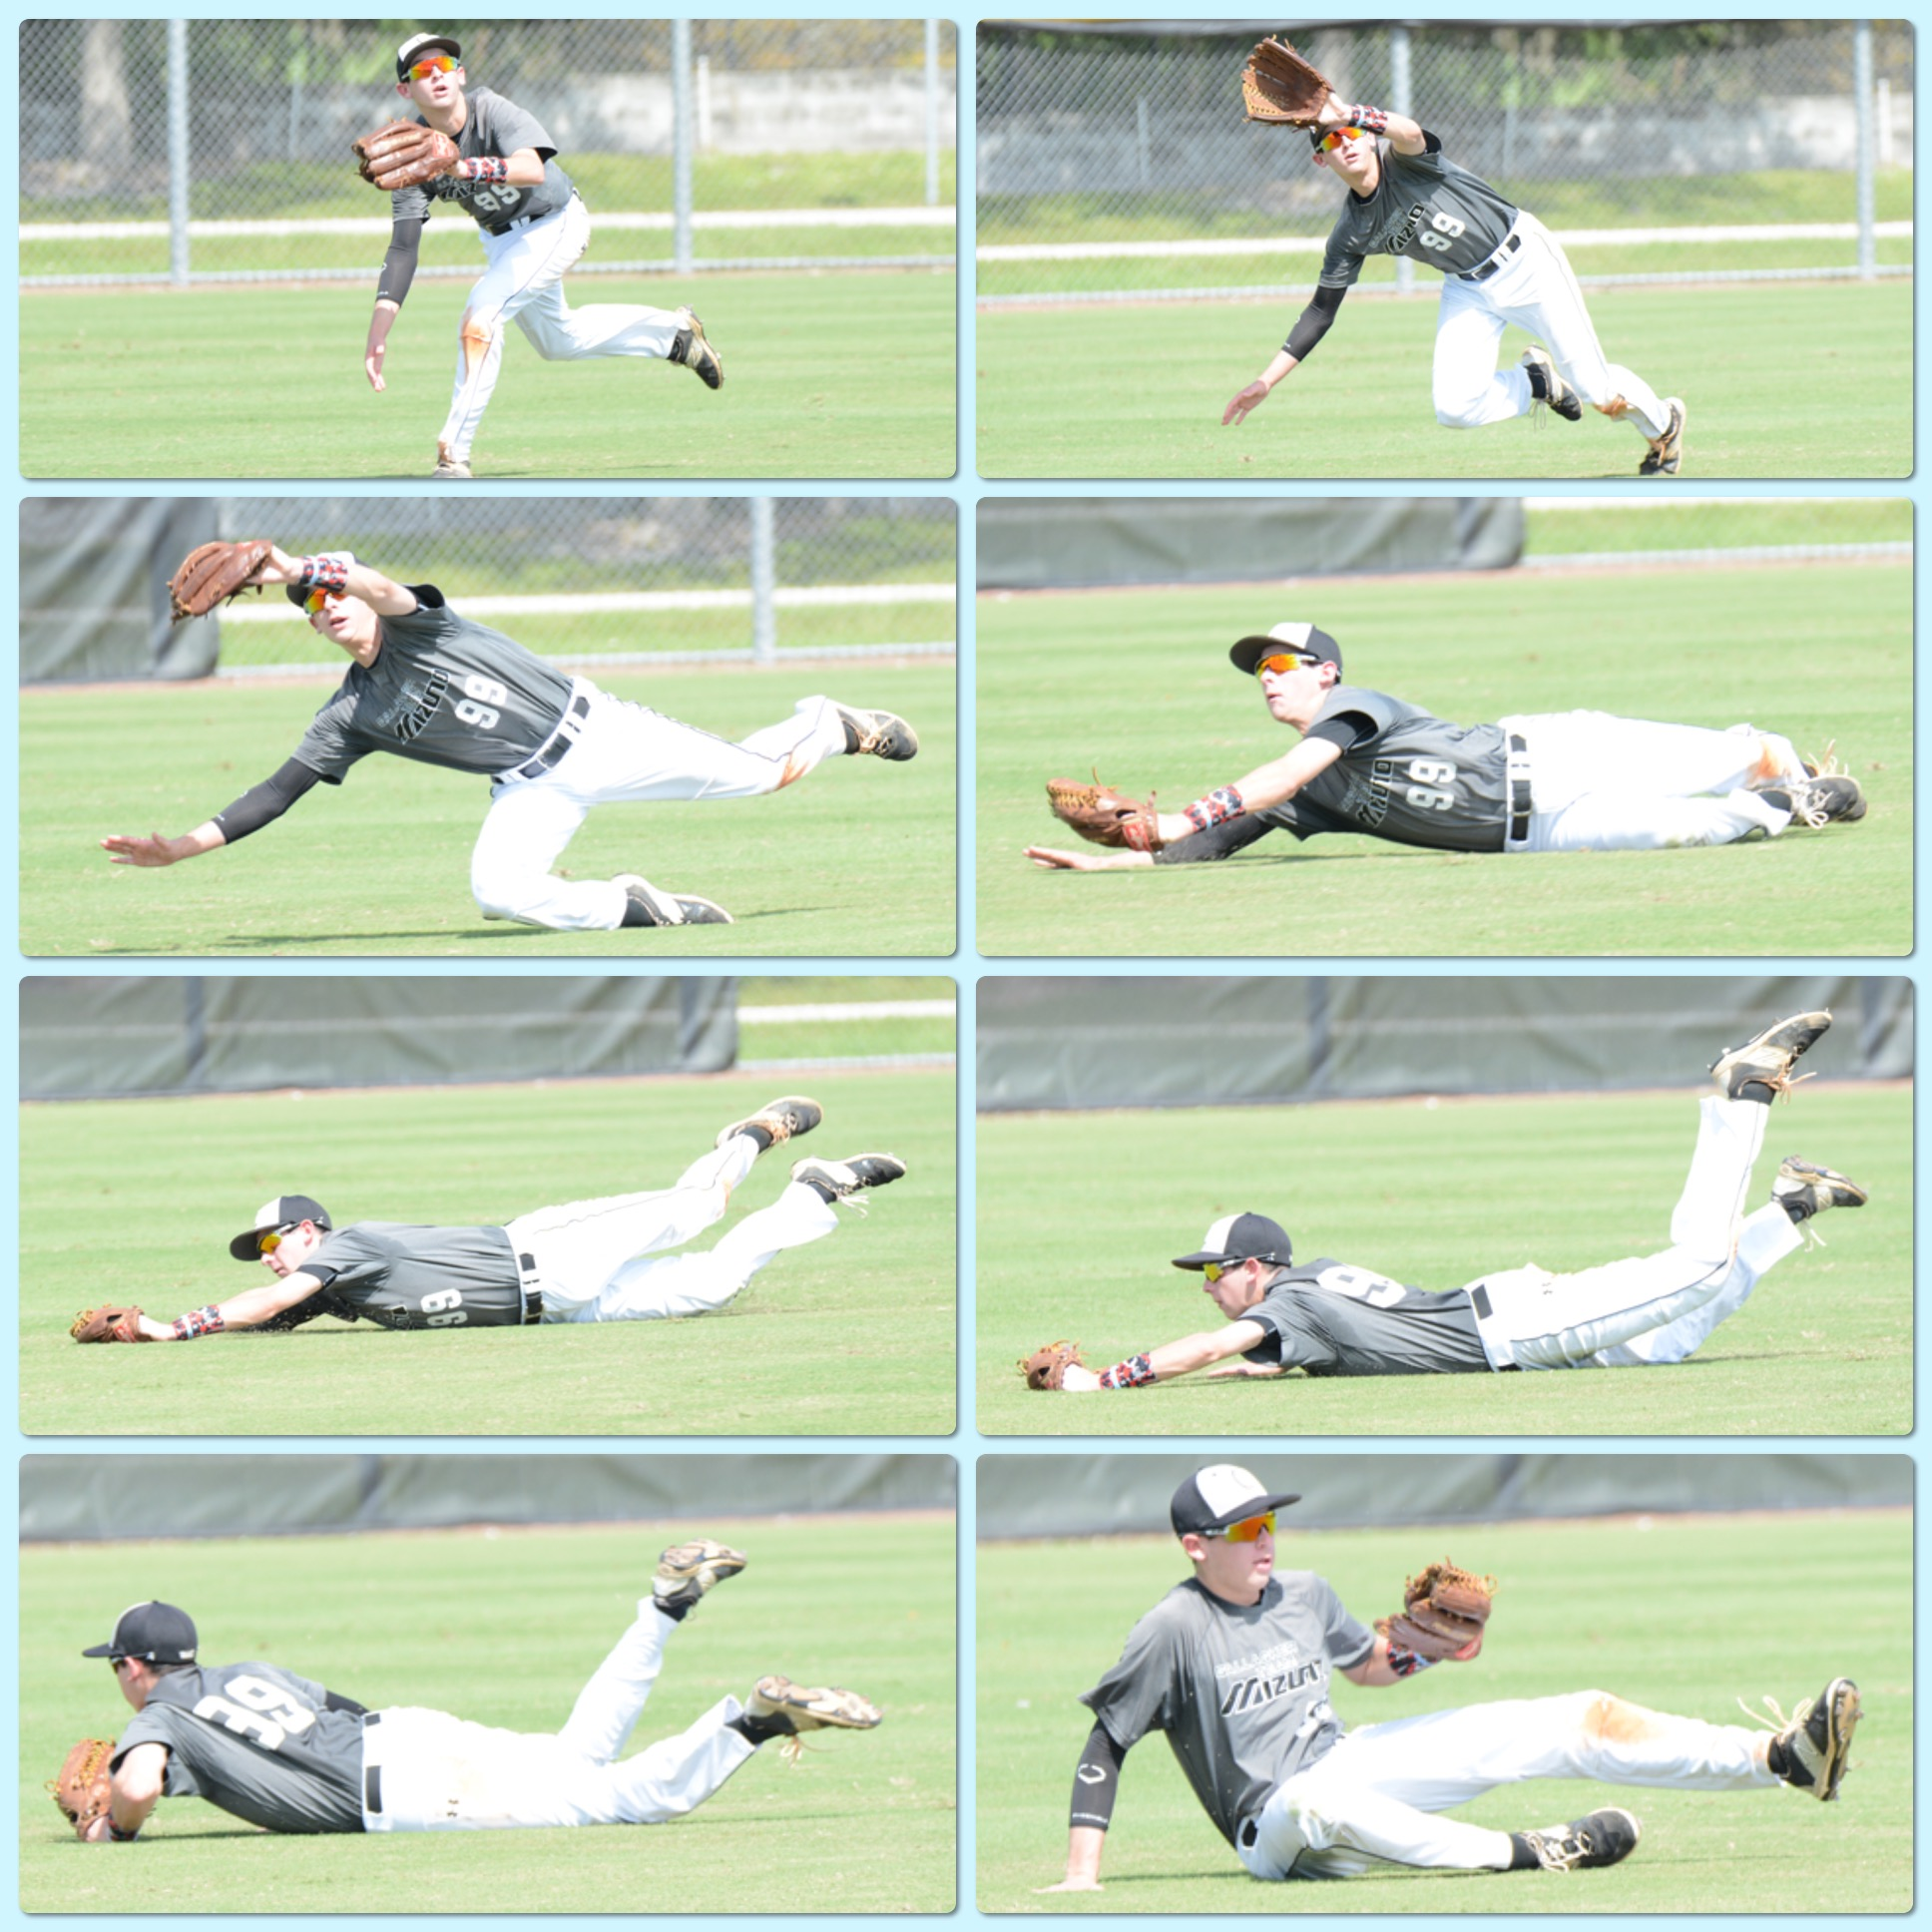 Long run in centerfield. Cole saved a game while in Florida with this catch in the last inning of game 2.